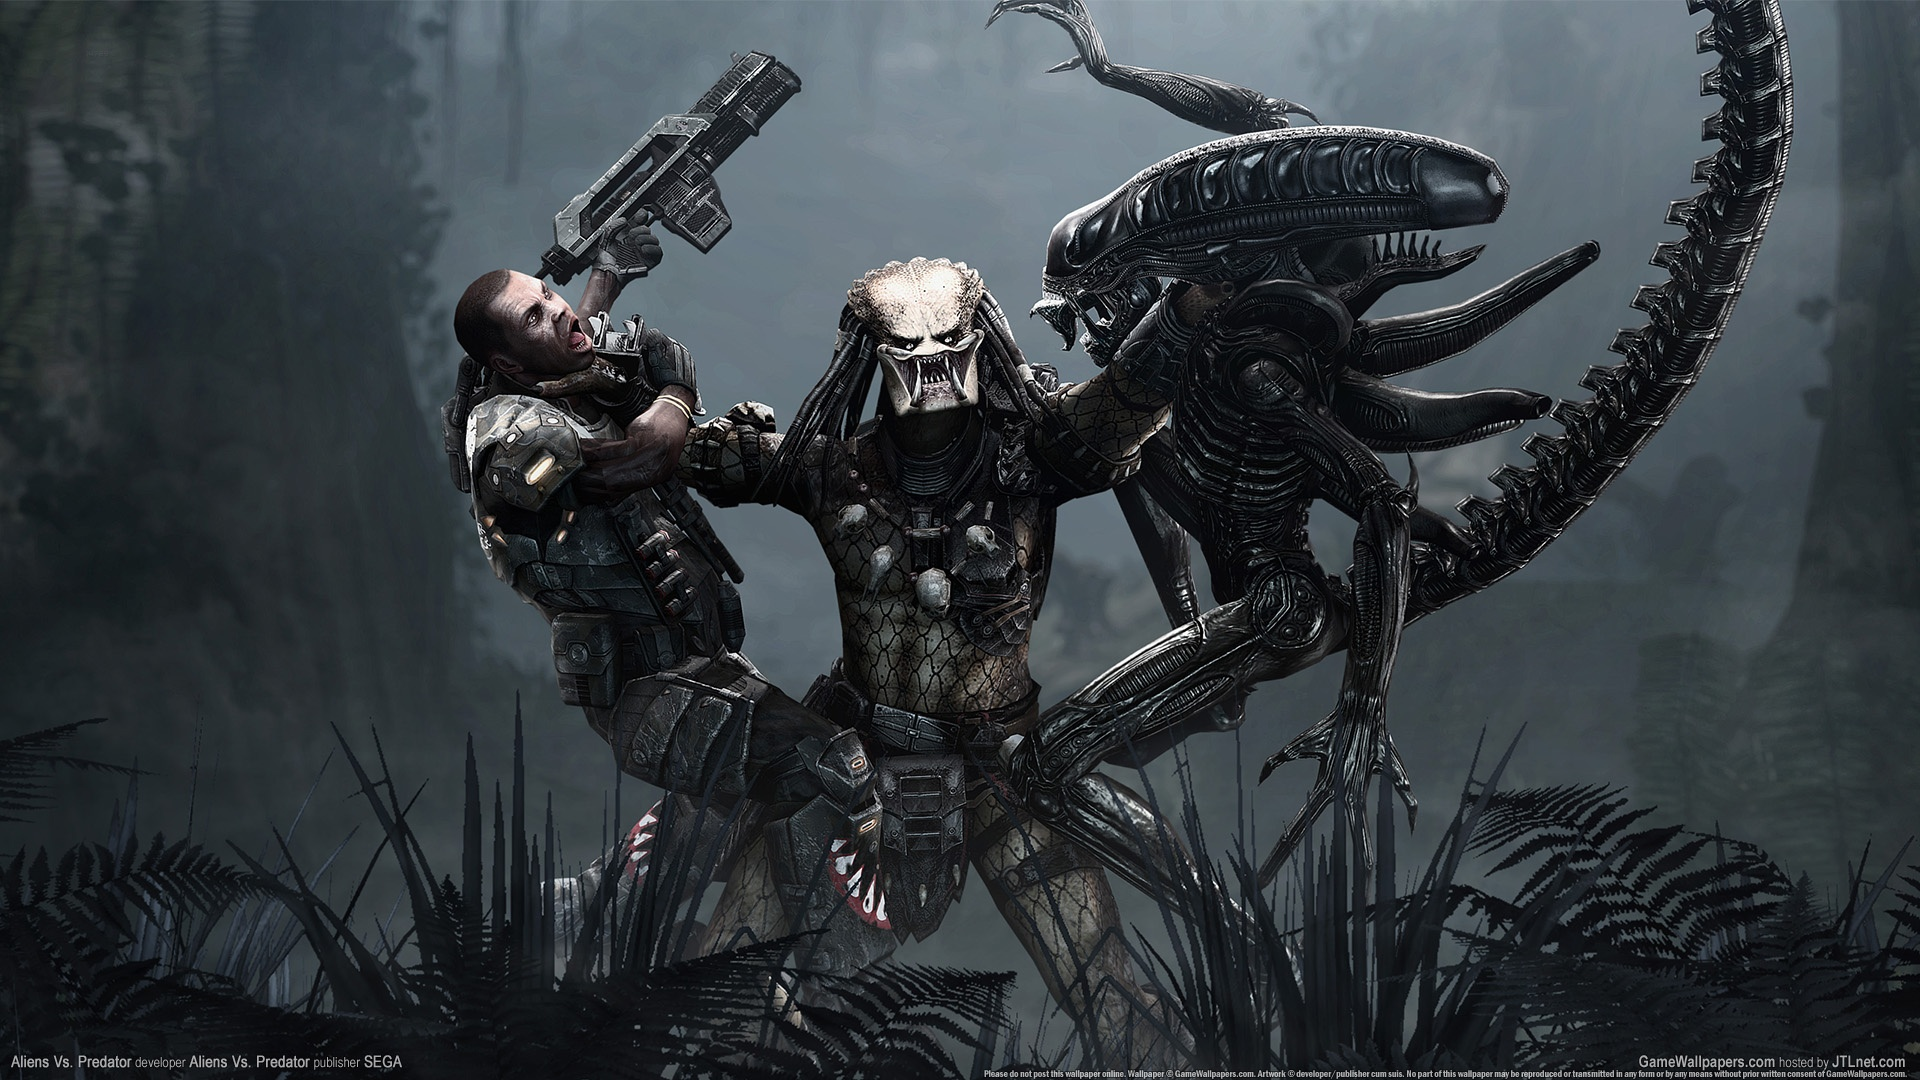 wallpaper_aliens_vs_predator_05_1920x1080.jpg